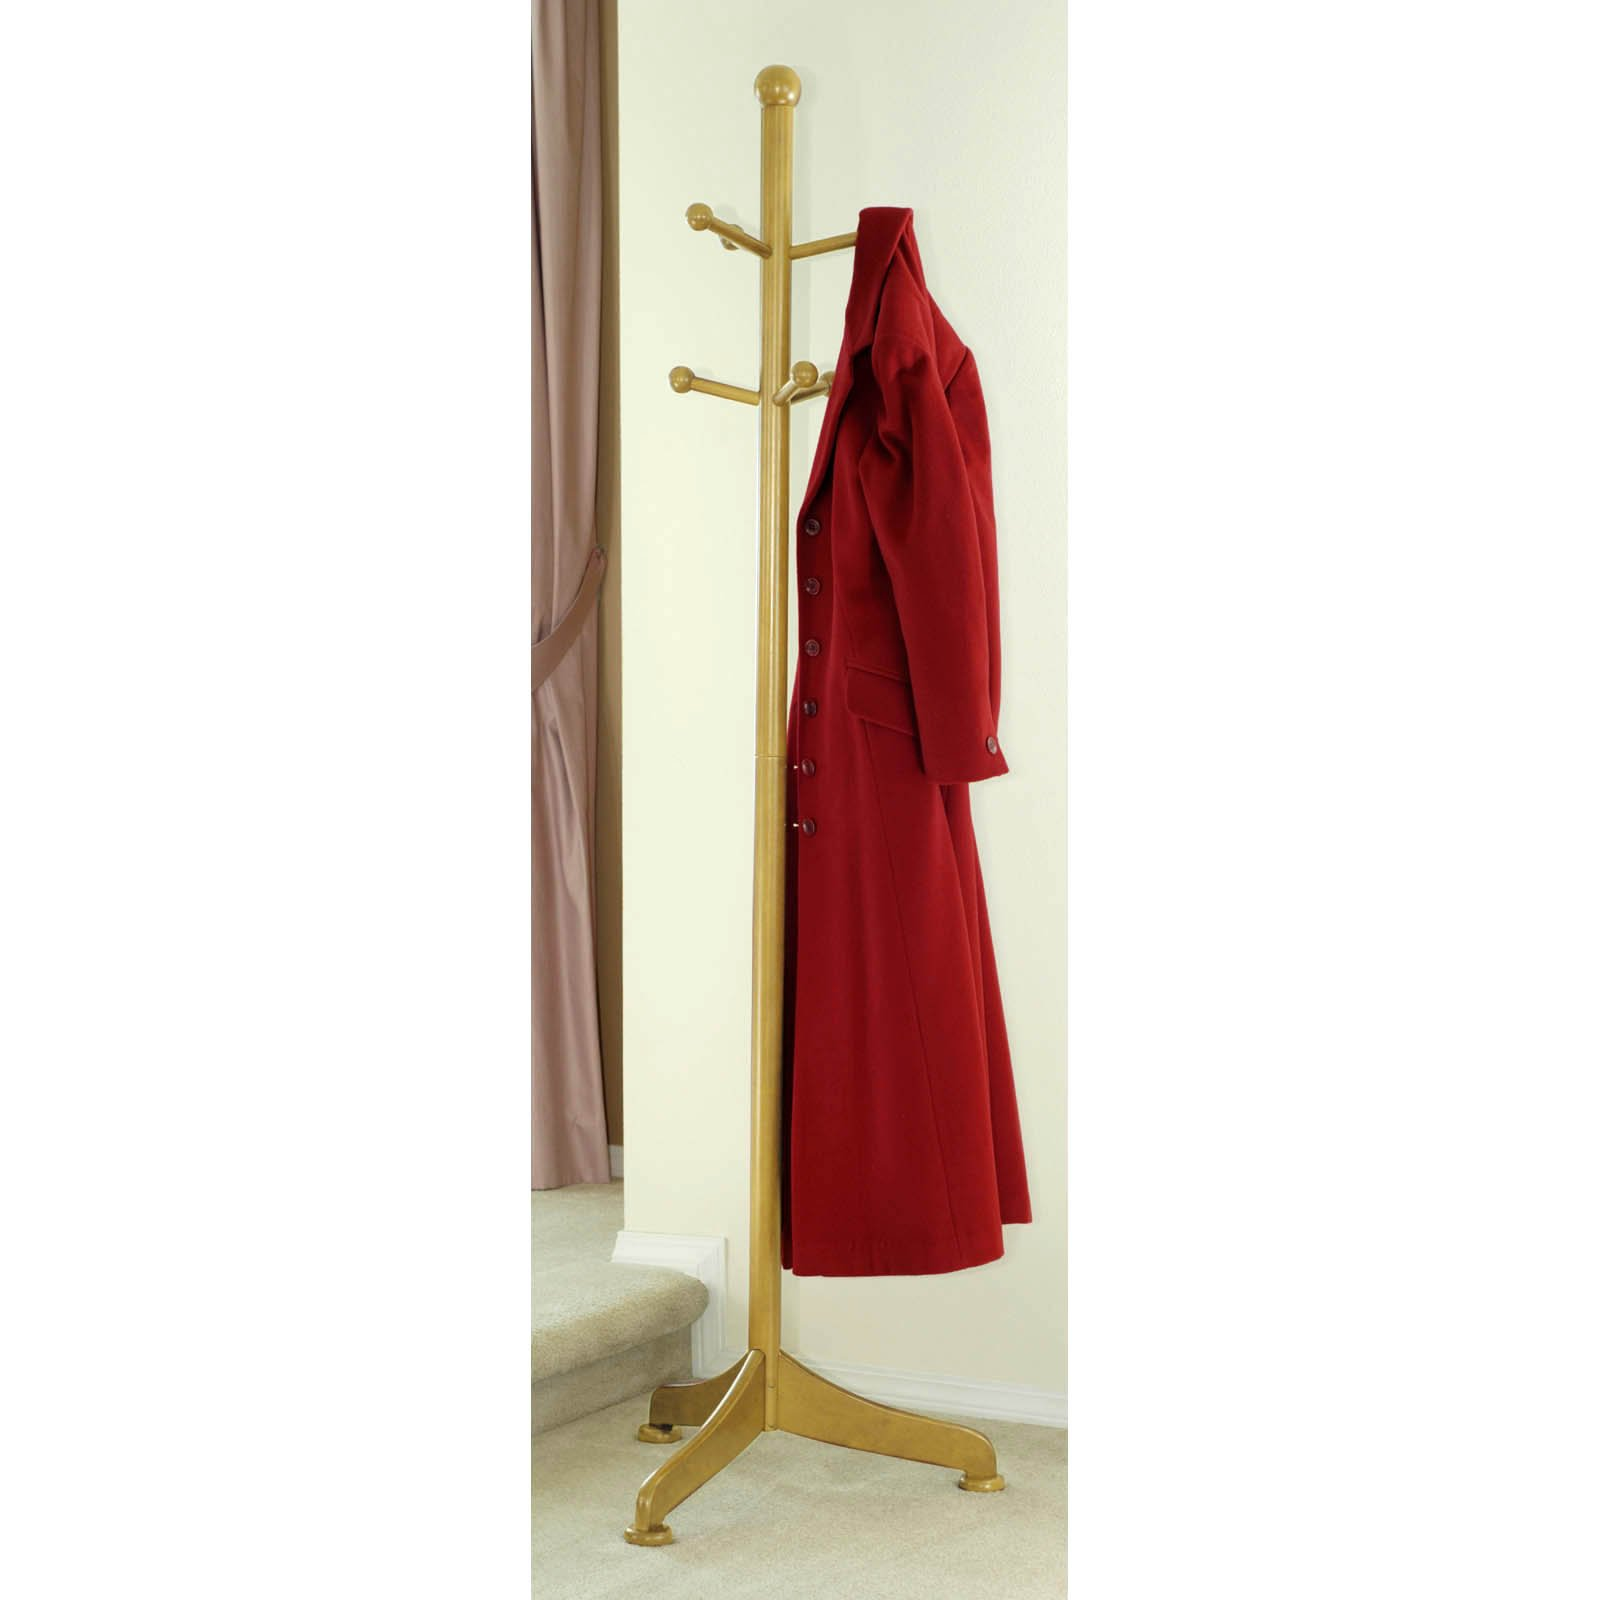 yellow standing coat rack with six hooks and single red coat hanged